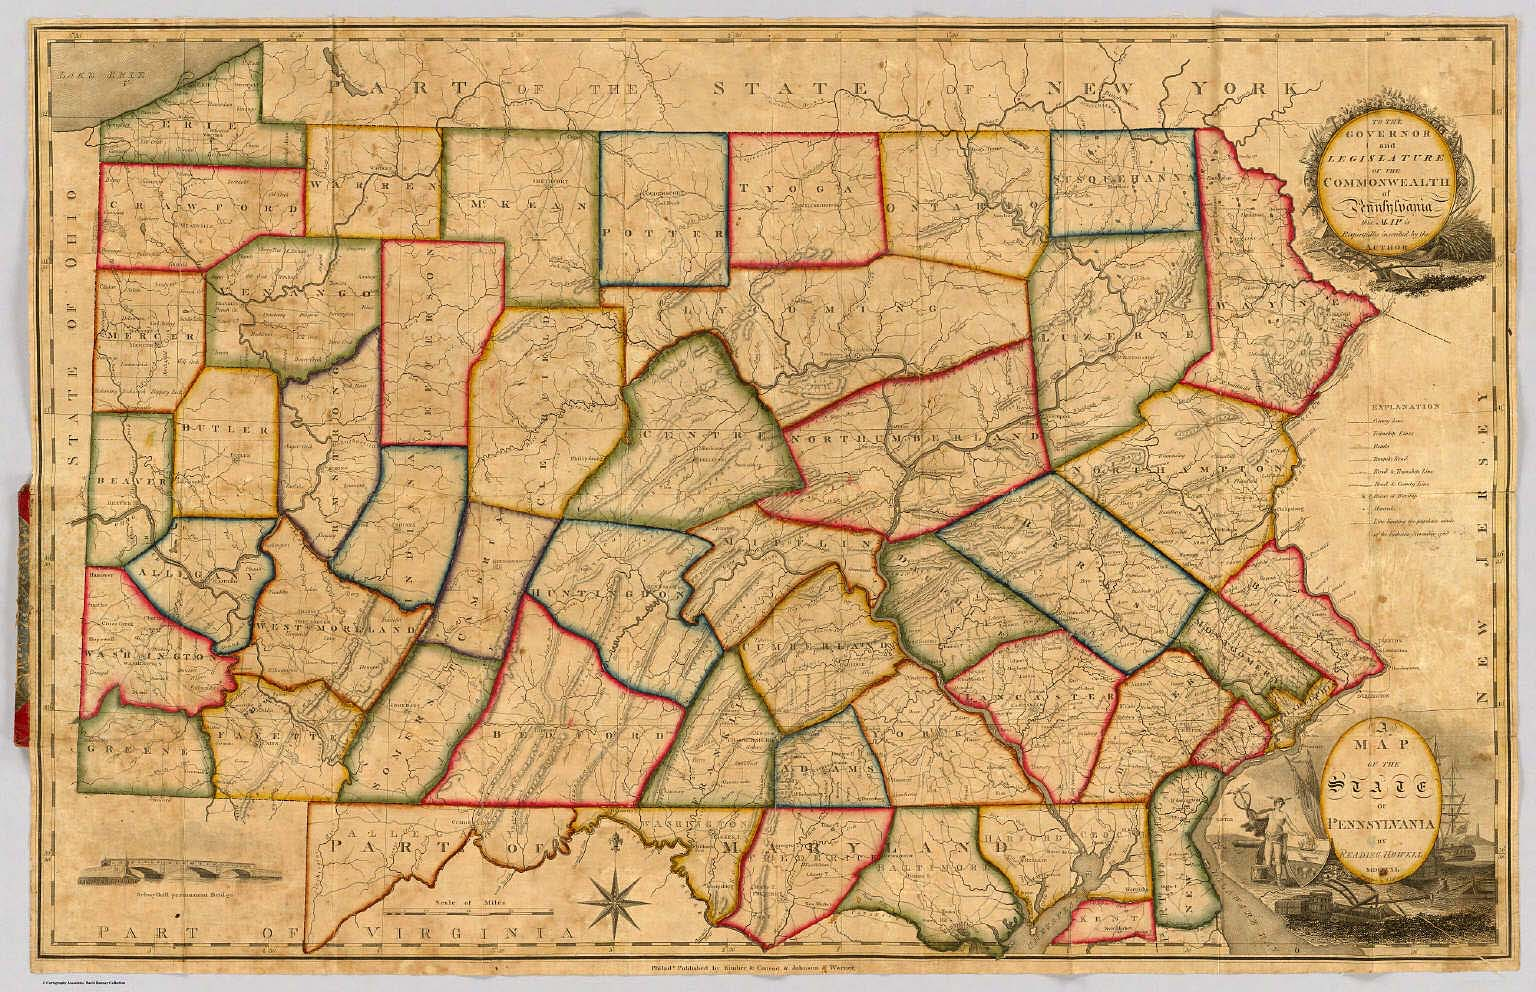 A Map Of The State Of Pennsylvania. - David Rumsey Historical Map ...